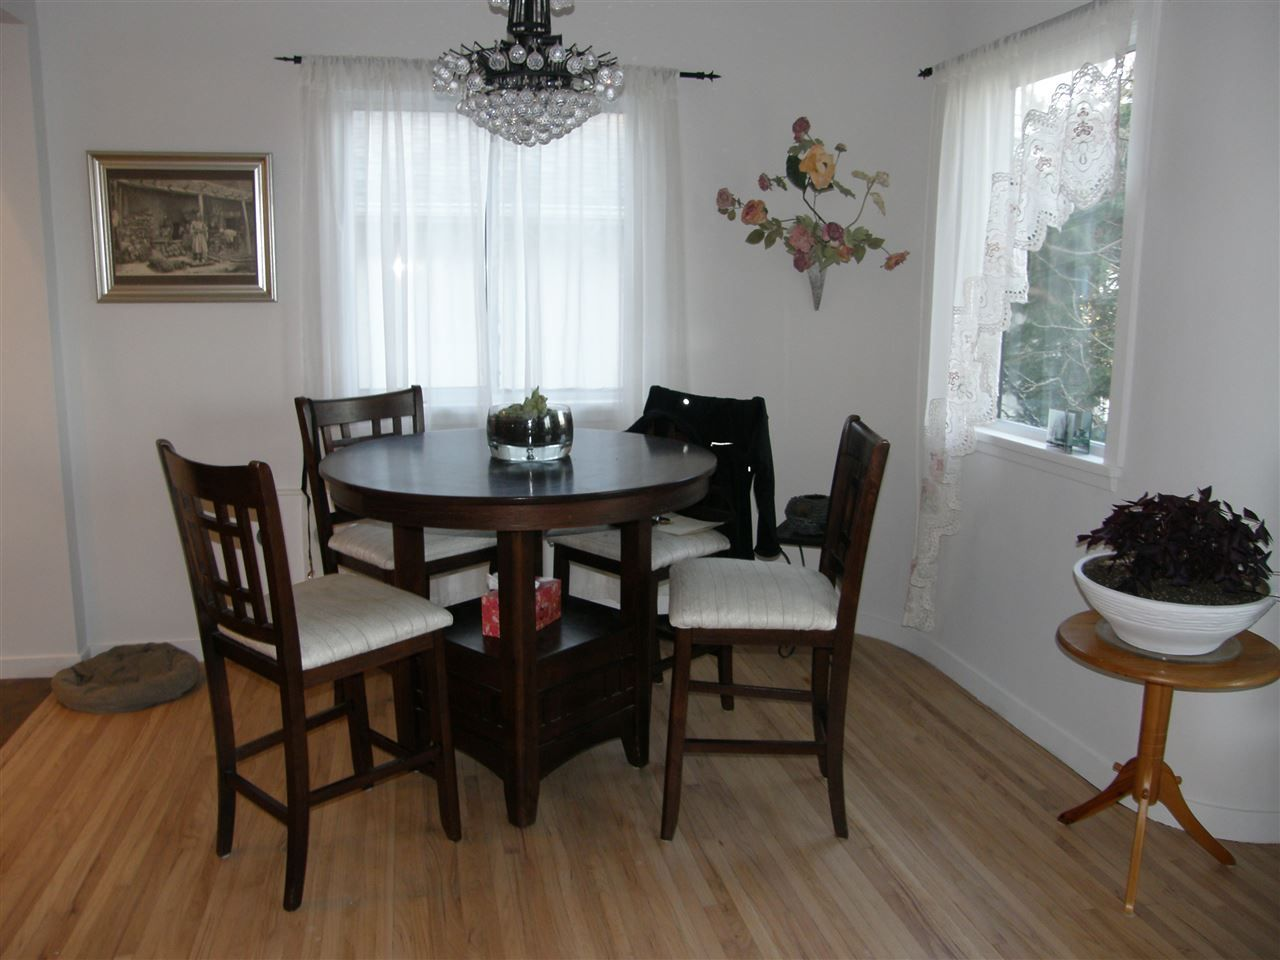 Photo 4: Photos: 788 CALVERHALL Street in North Vancouver: Calverhall House for sale : MLS® # R2245708